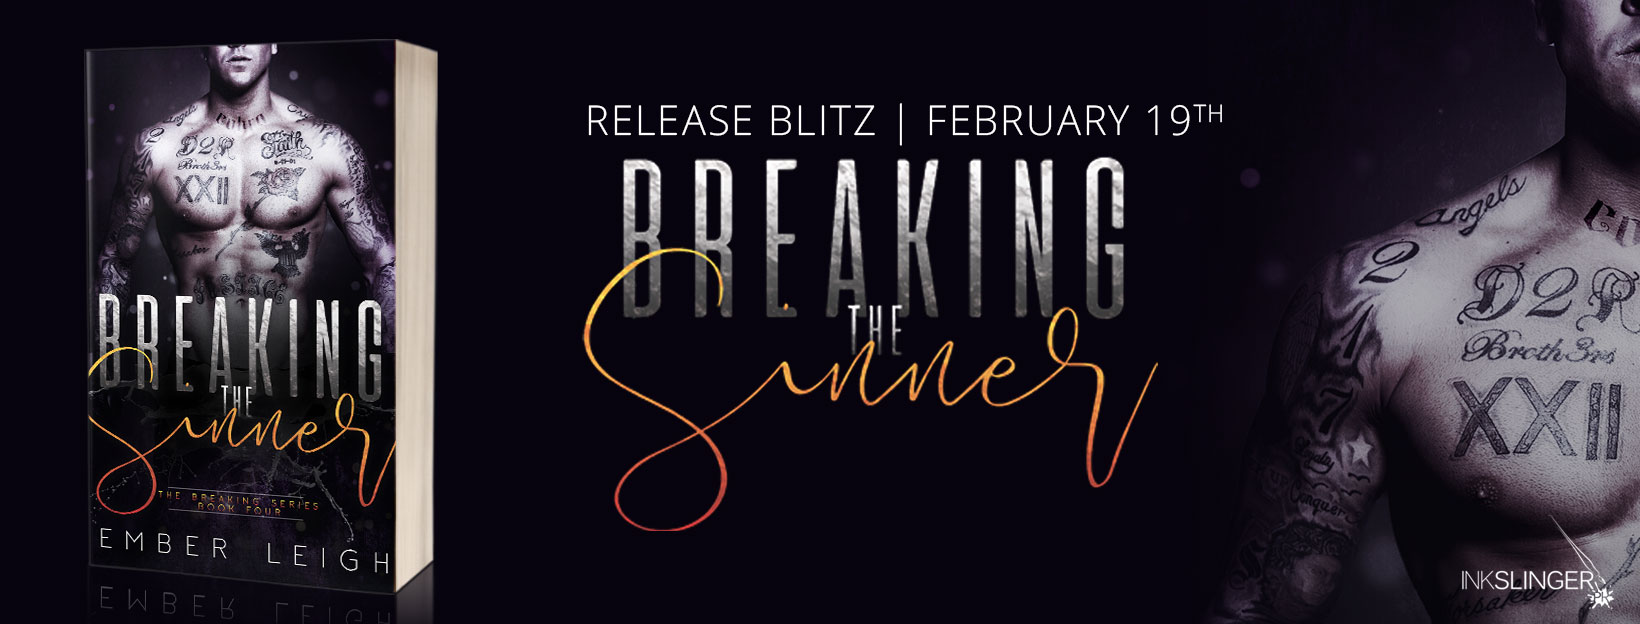 Release Blitz ~ Breaking The Sinner (The Breaking Series Book 4) by Ember Leigh